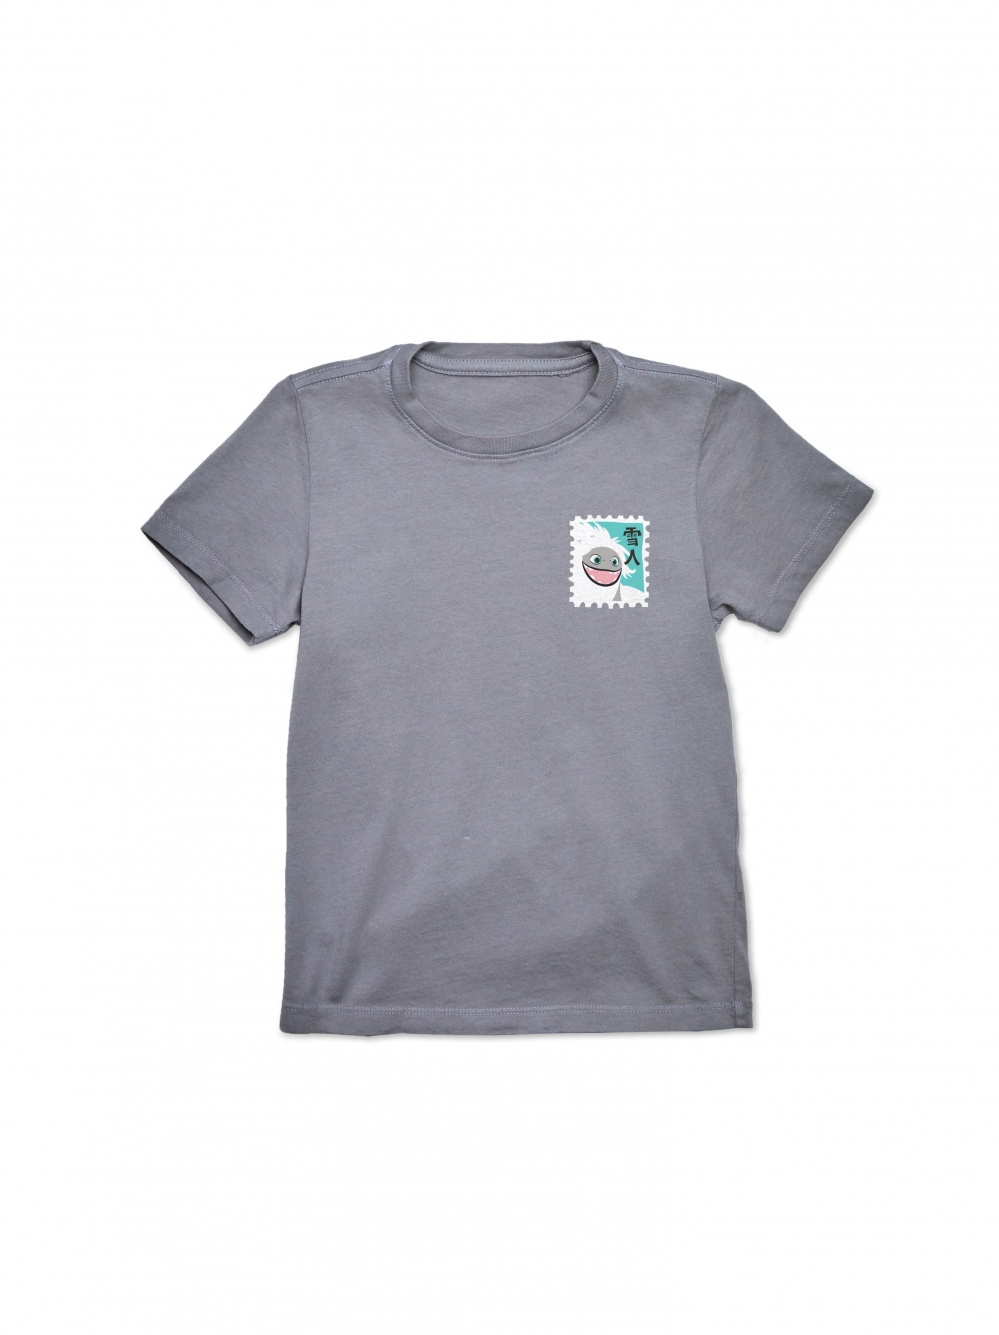 Abominable Graphic Tee